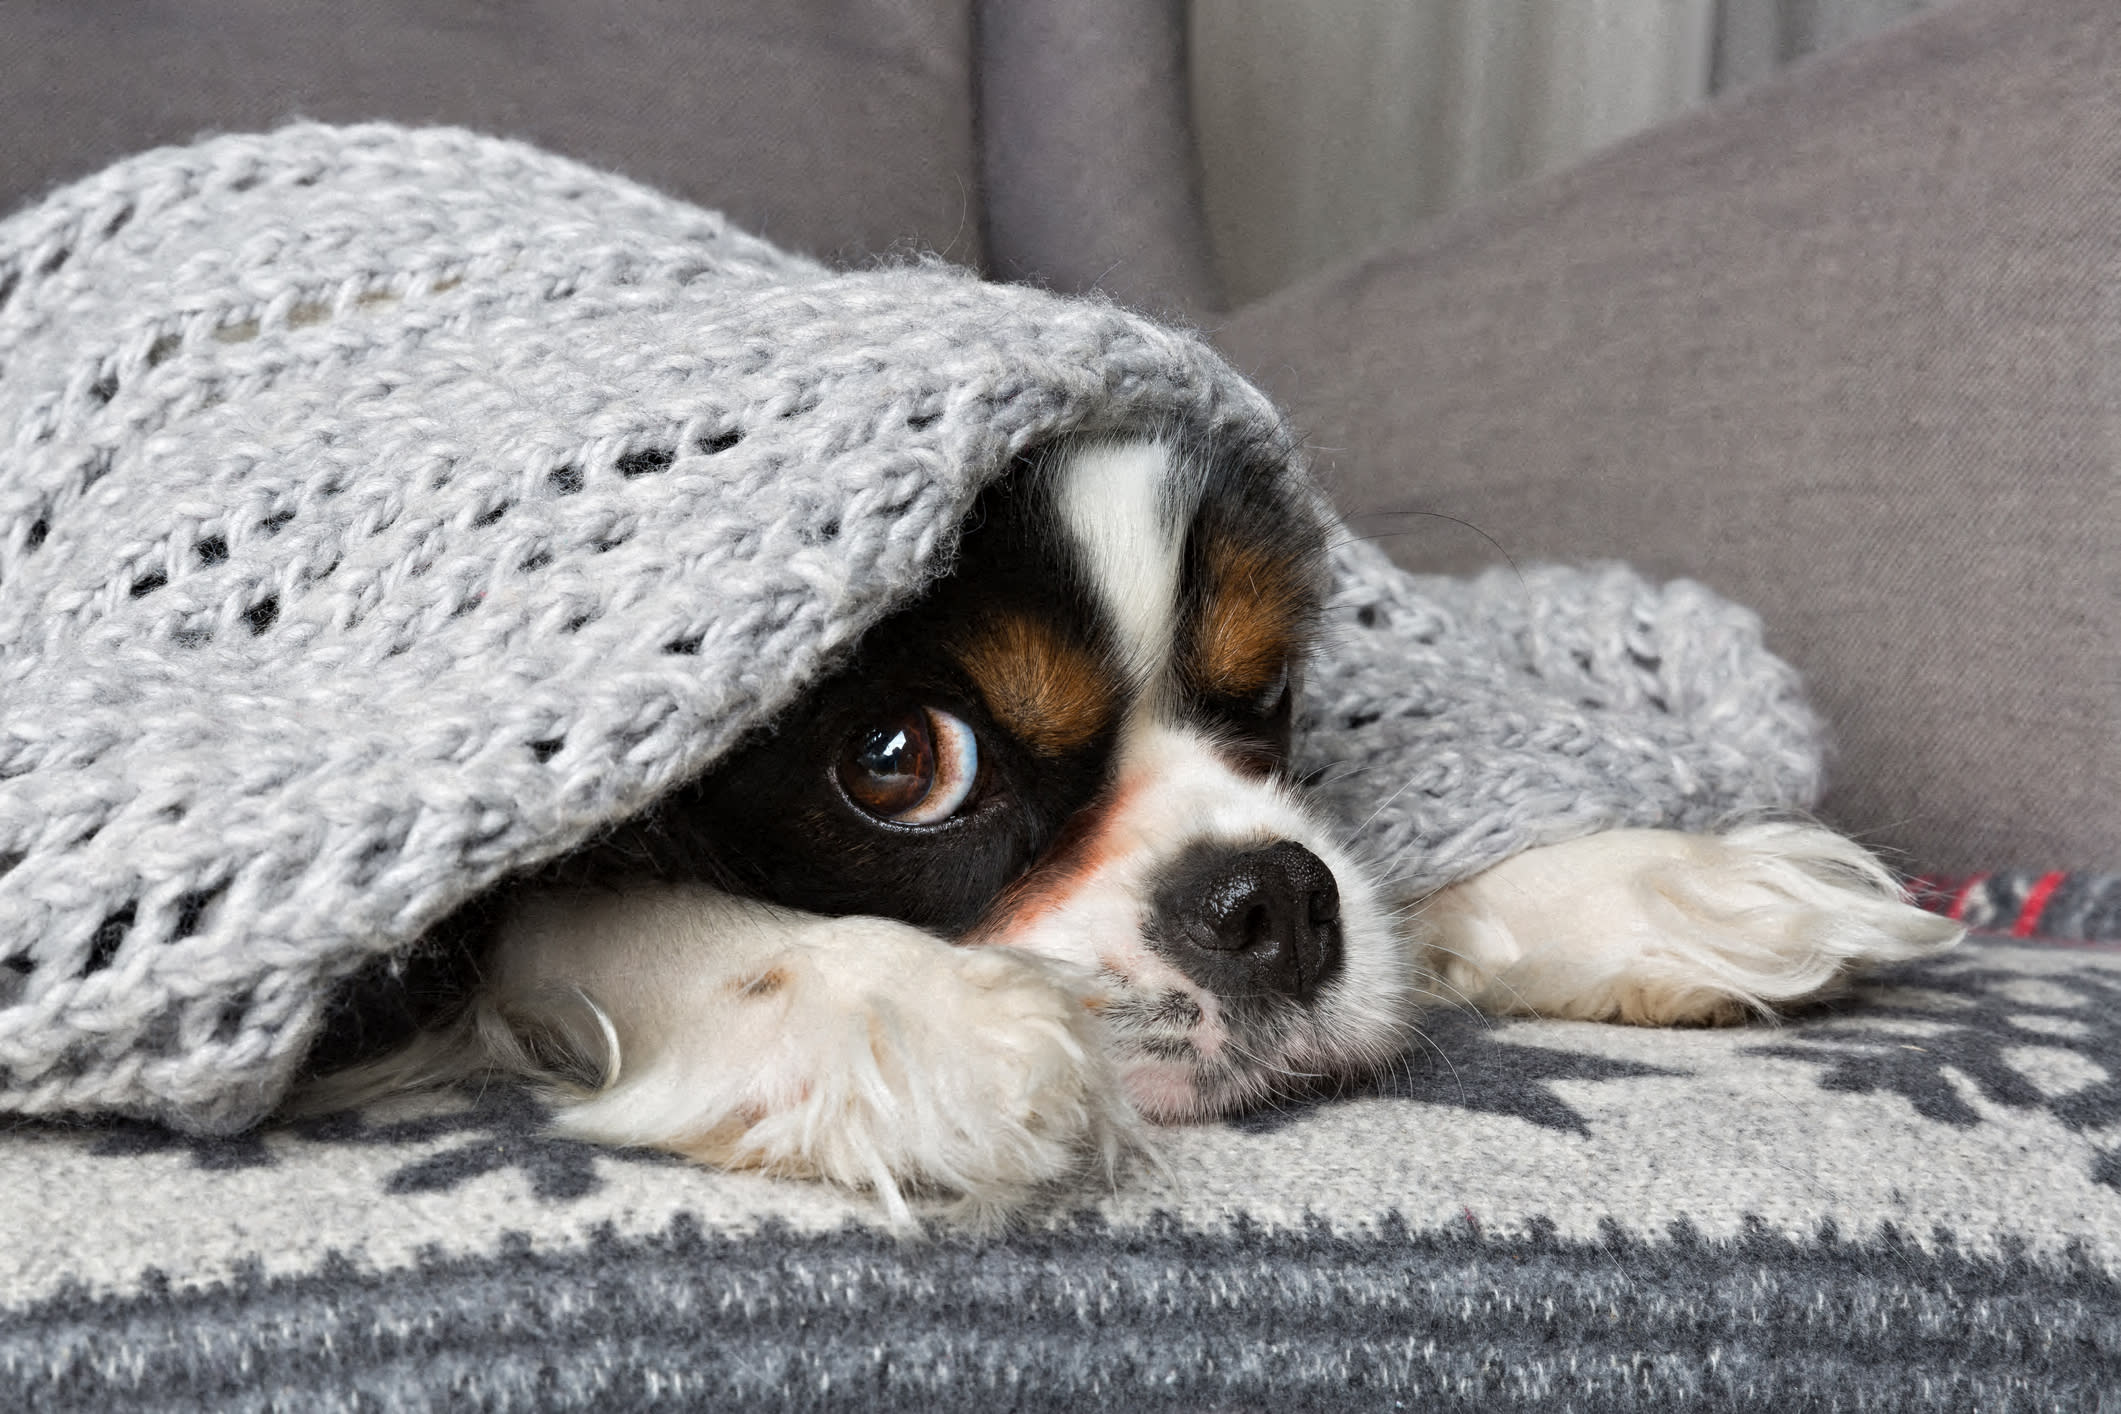 Dog on couch with blanket over head at Windsor at Pinehurst, CO, 80235